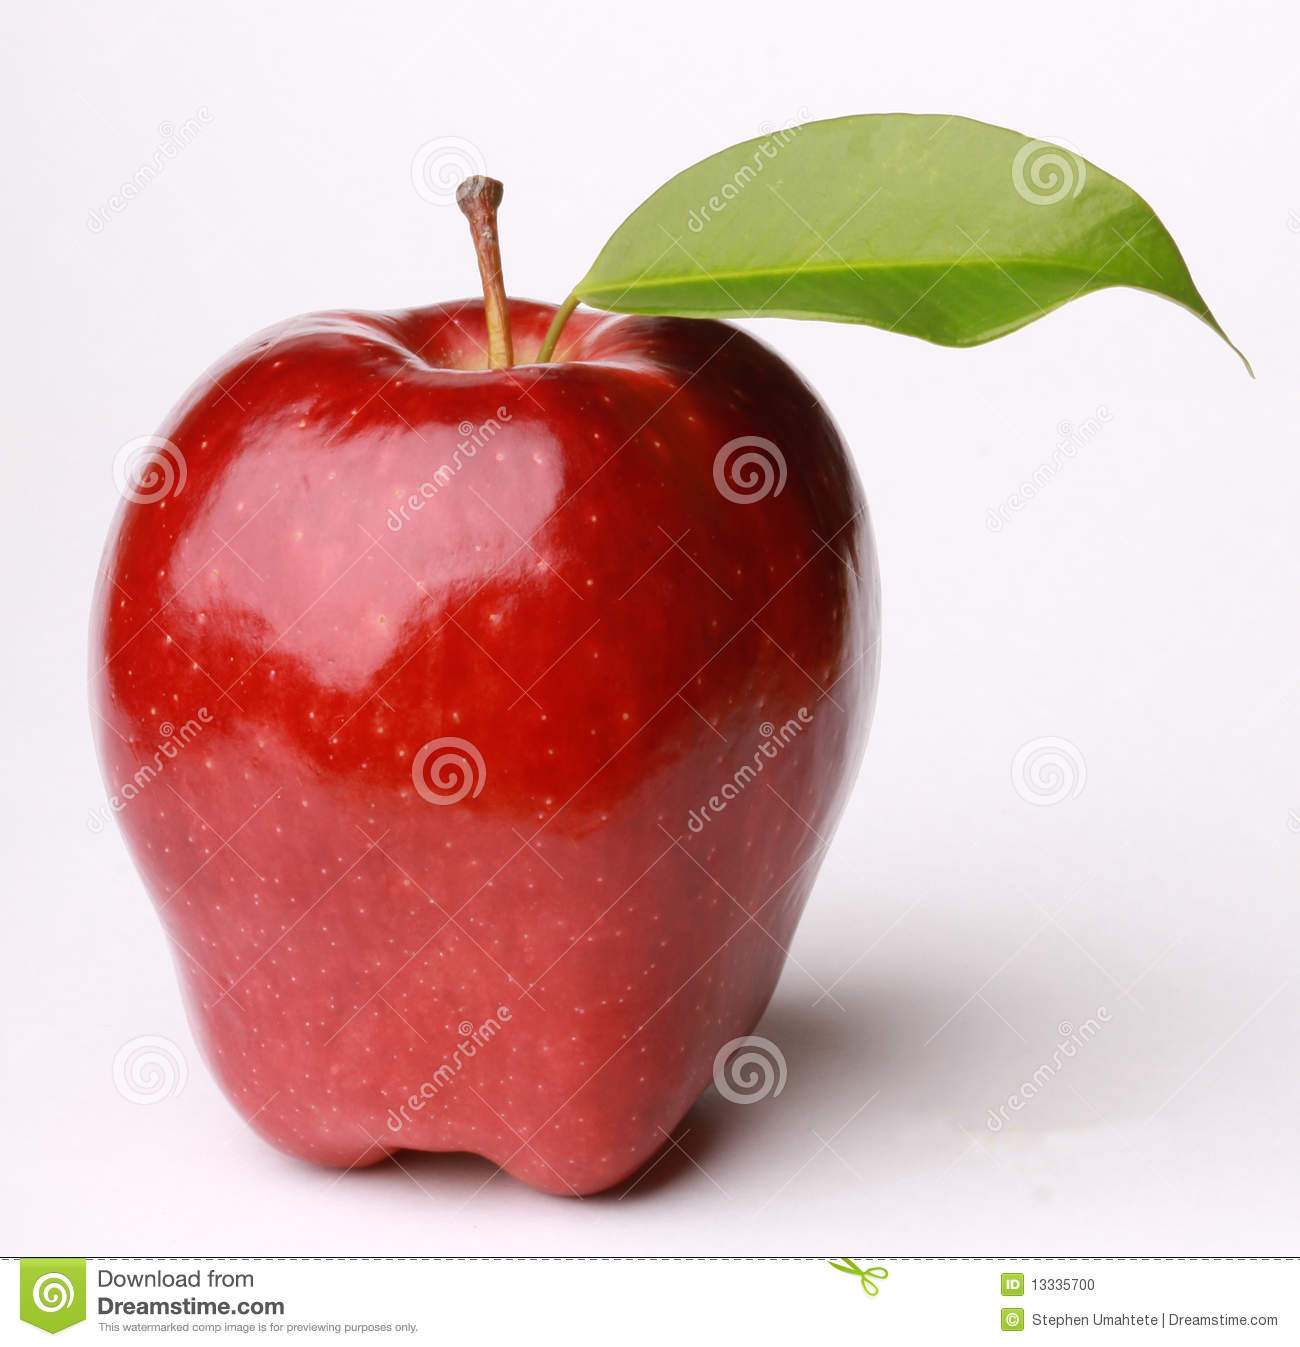 how to make a red apple in photoshop